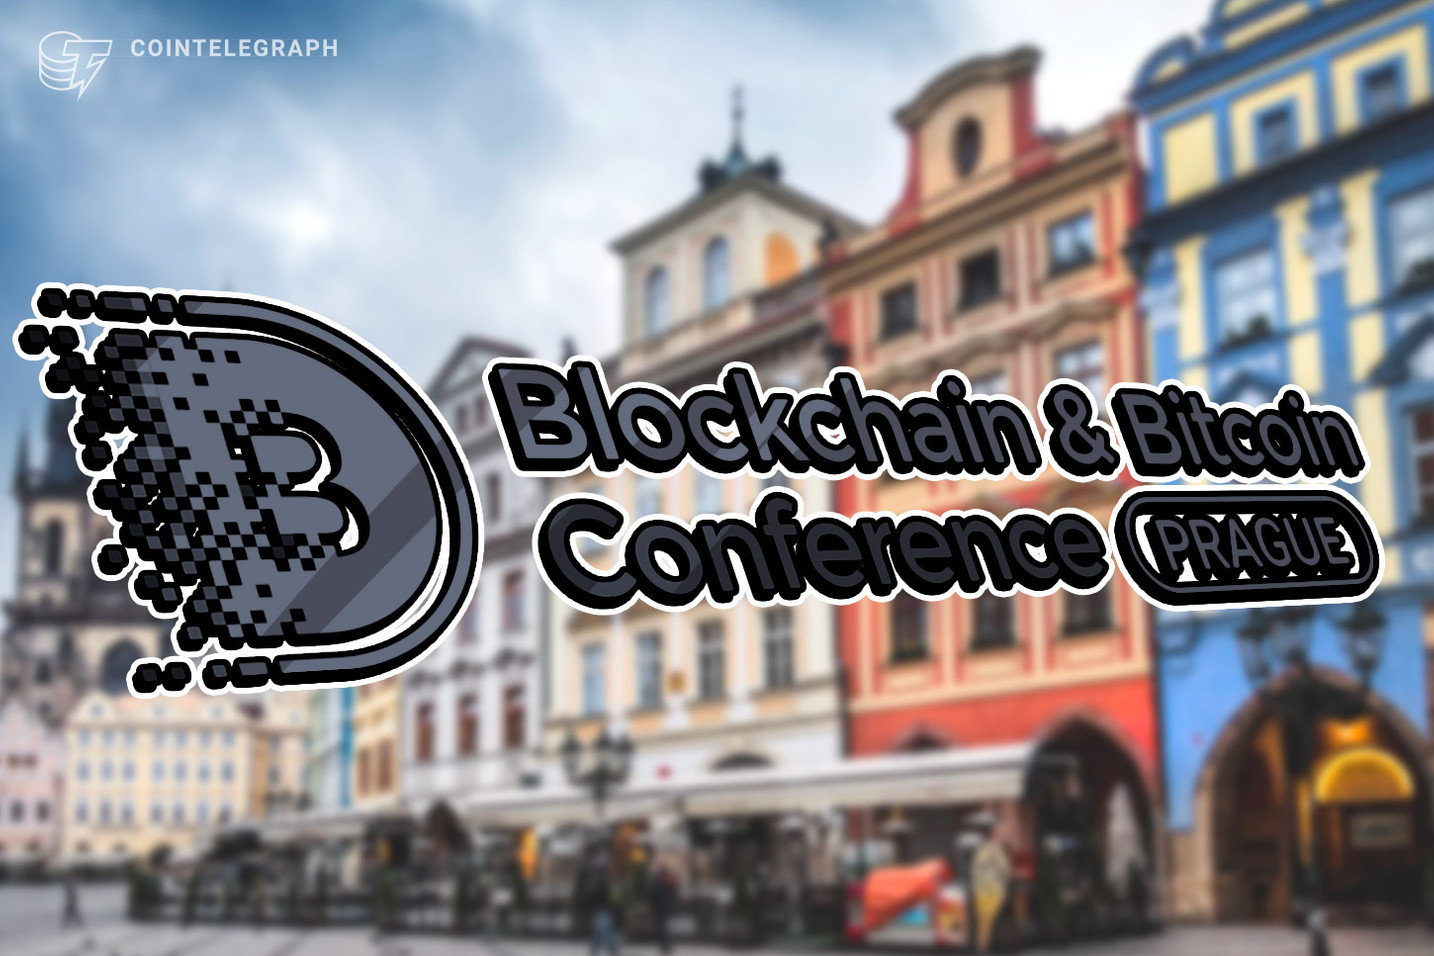 Results of Crypto Event in the Czech Republic: Blockchain & Bitcoin Conference Prague